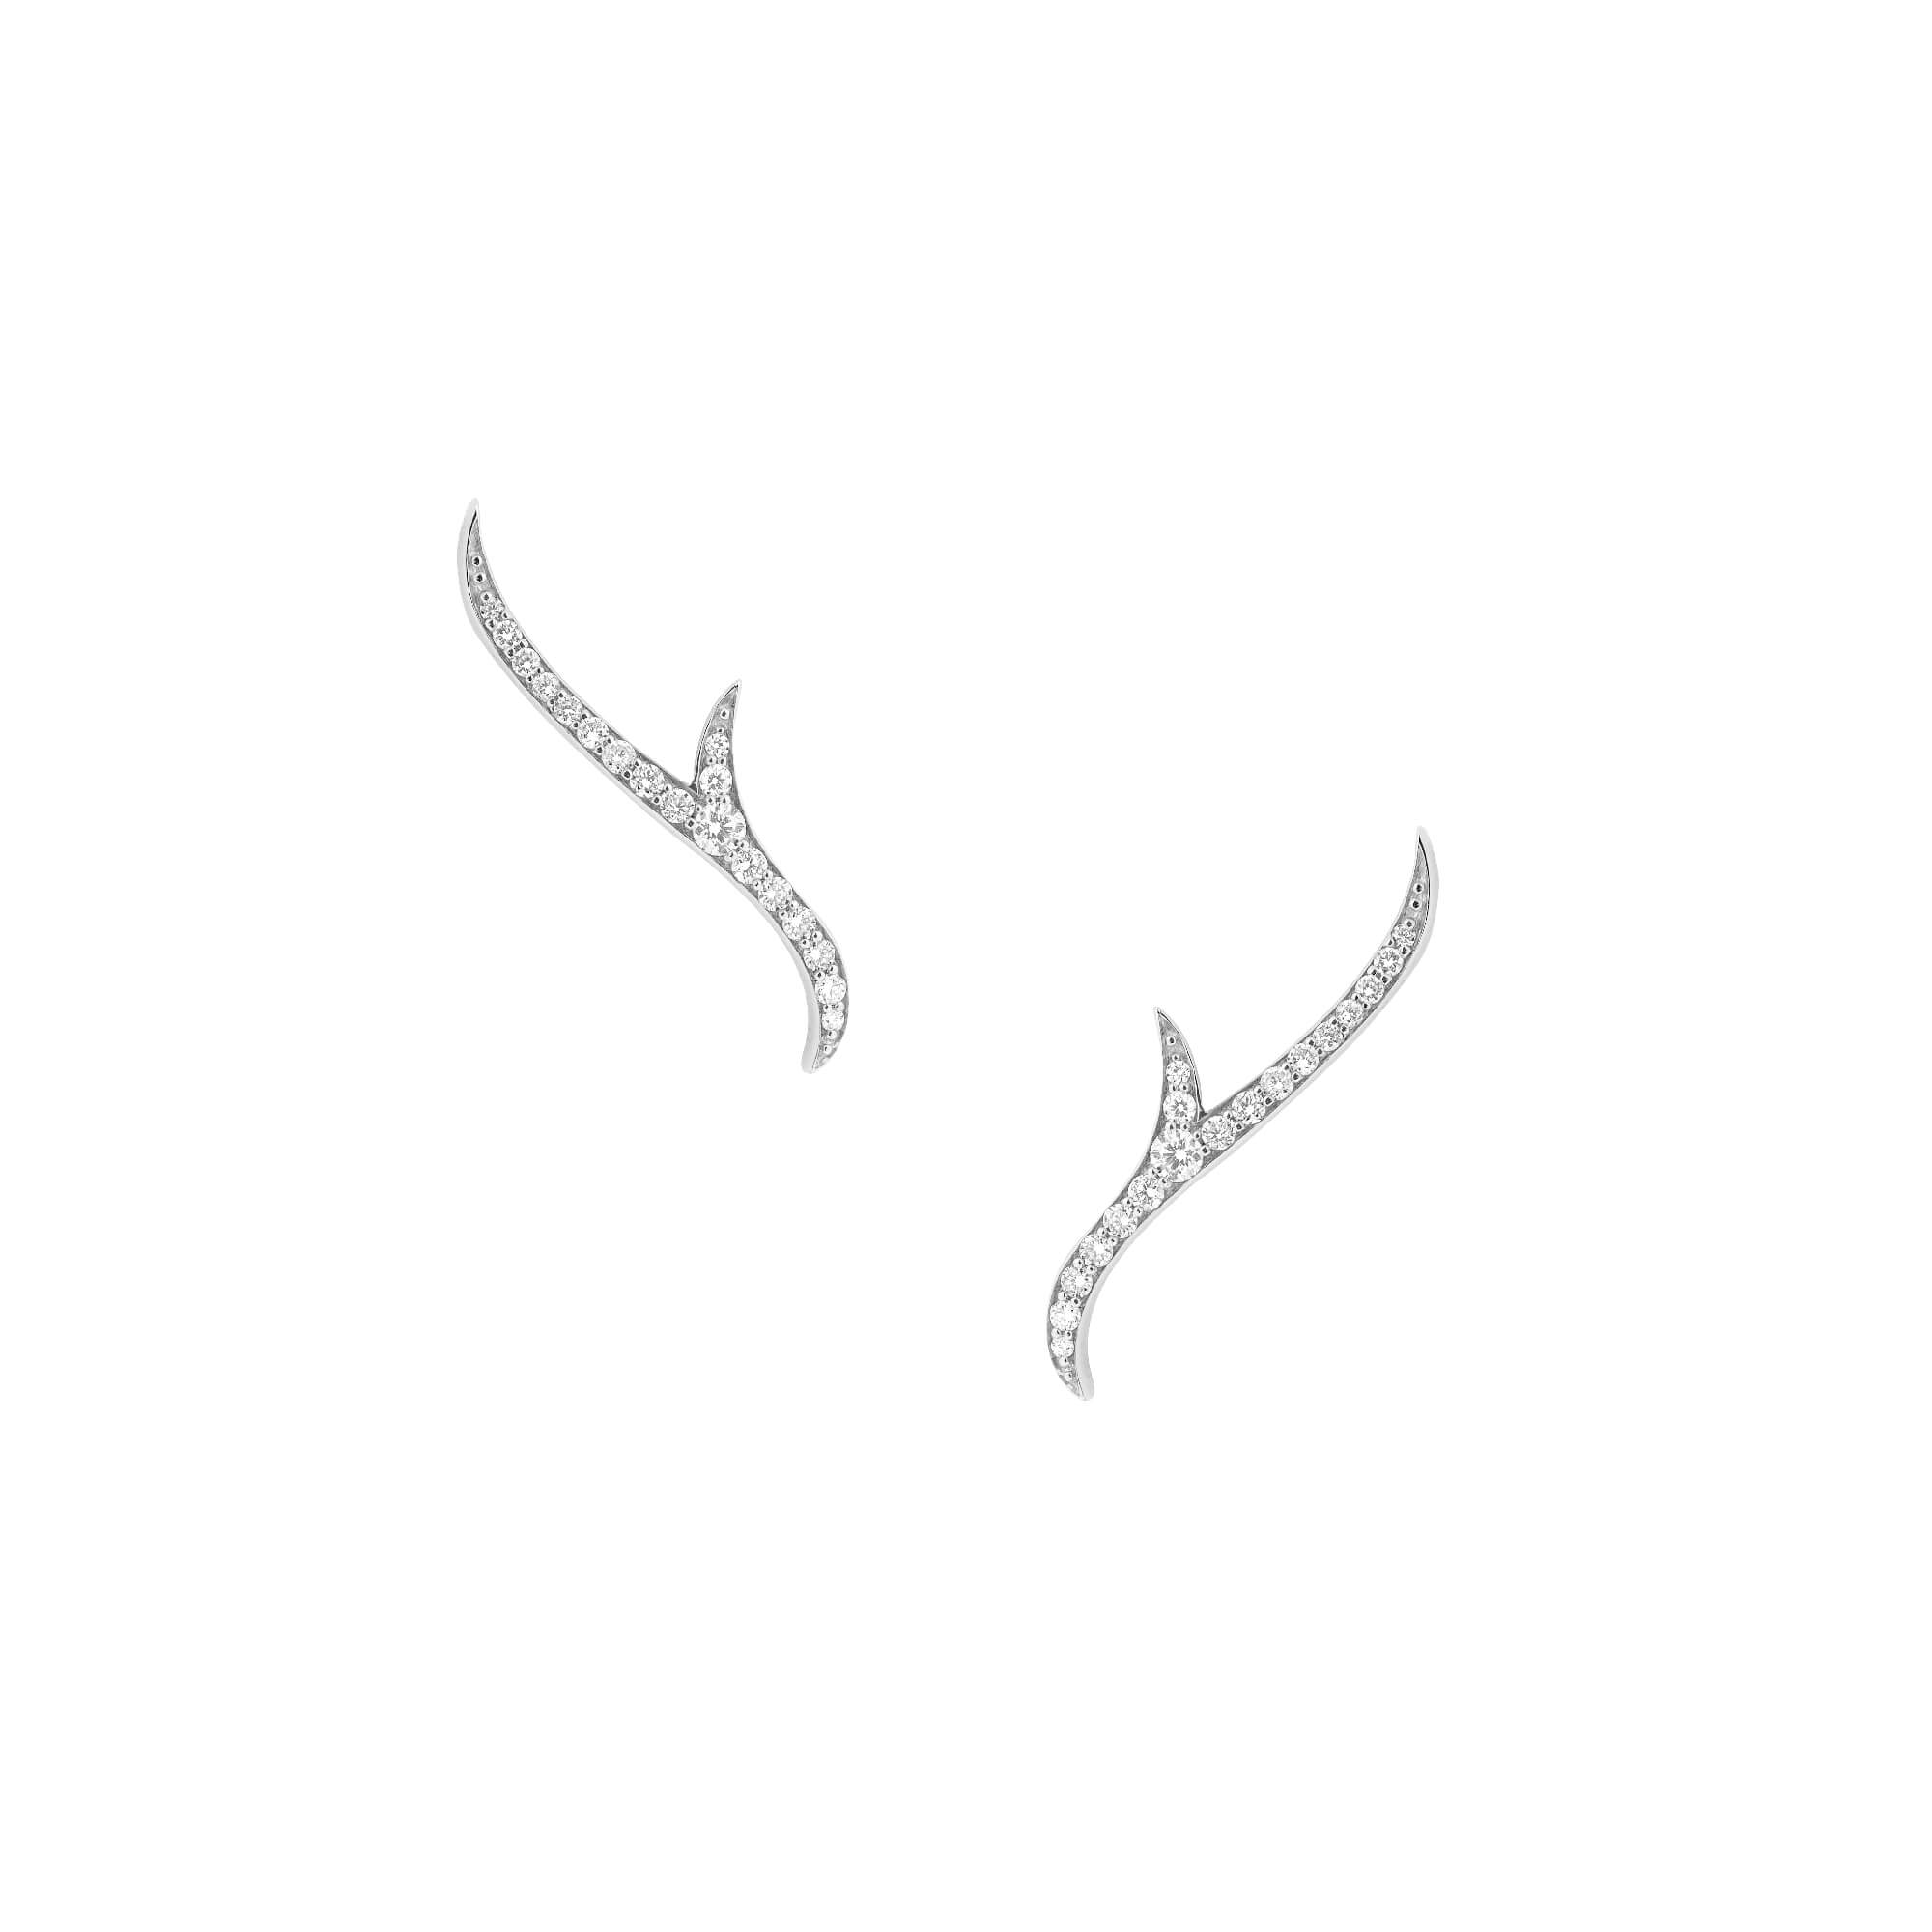 White Gold Stem Earstuds with White Diamond | Thorn